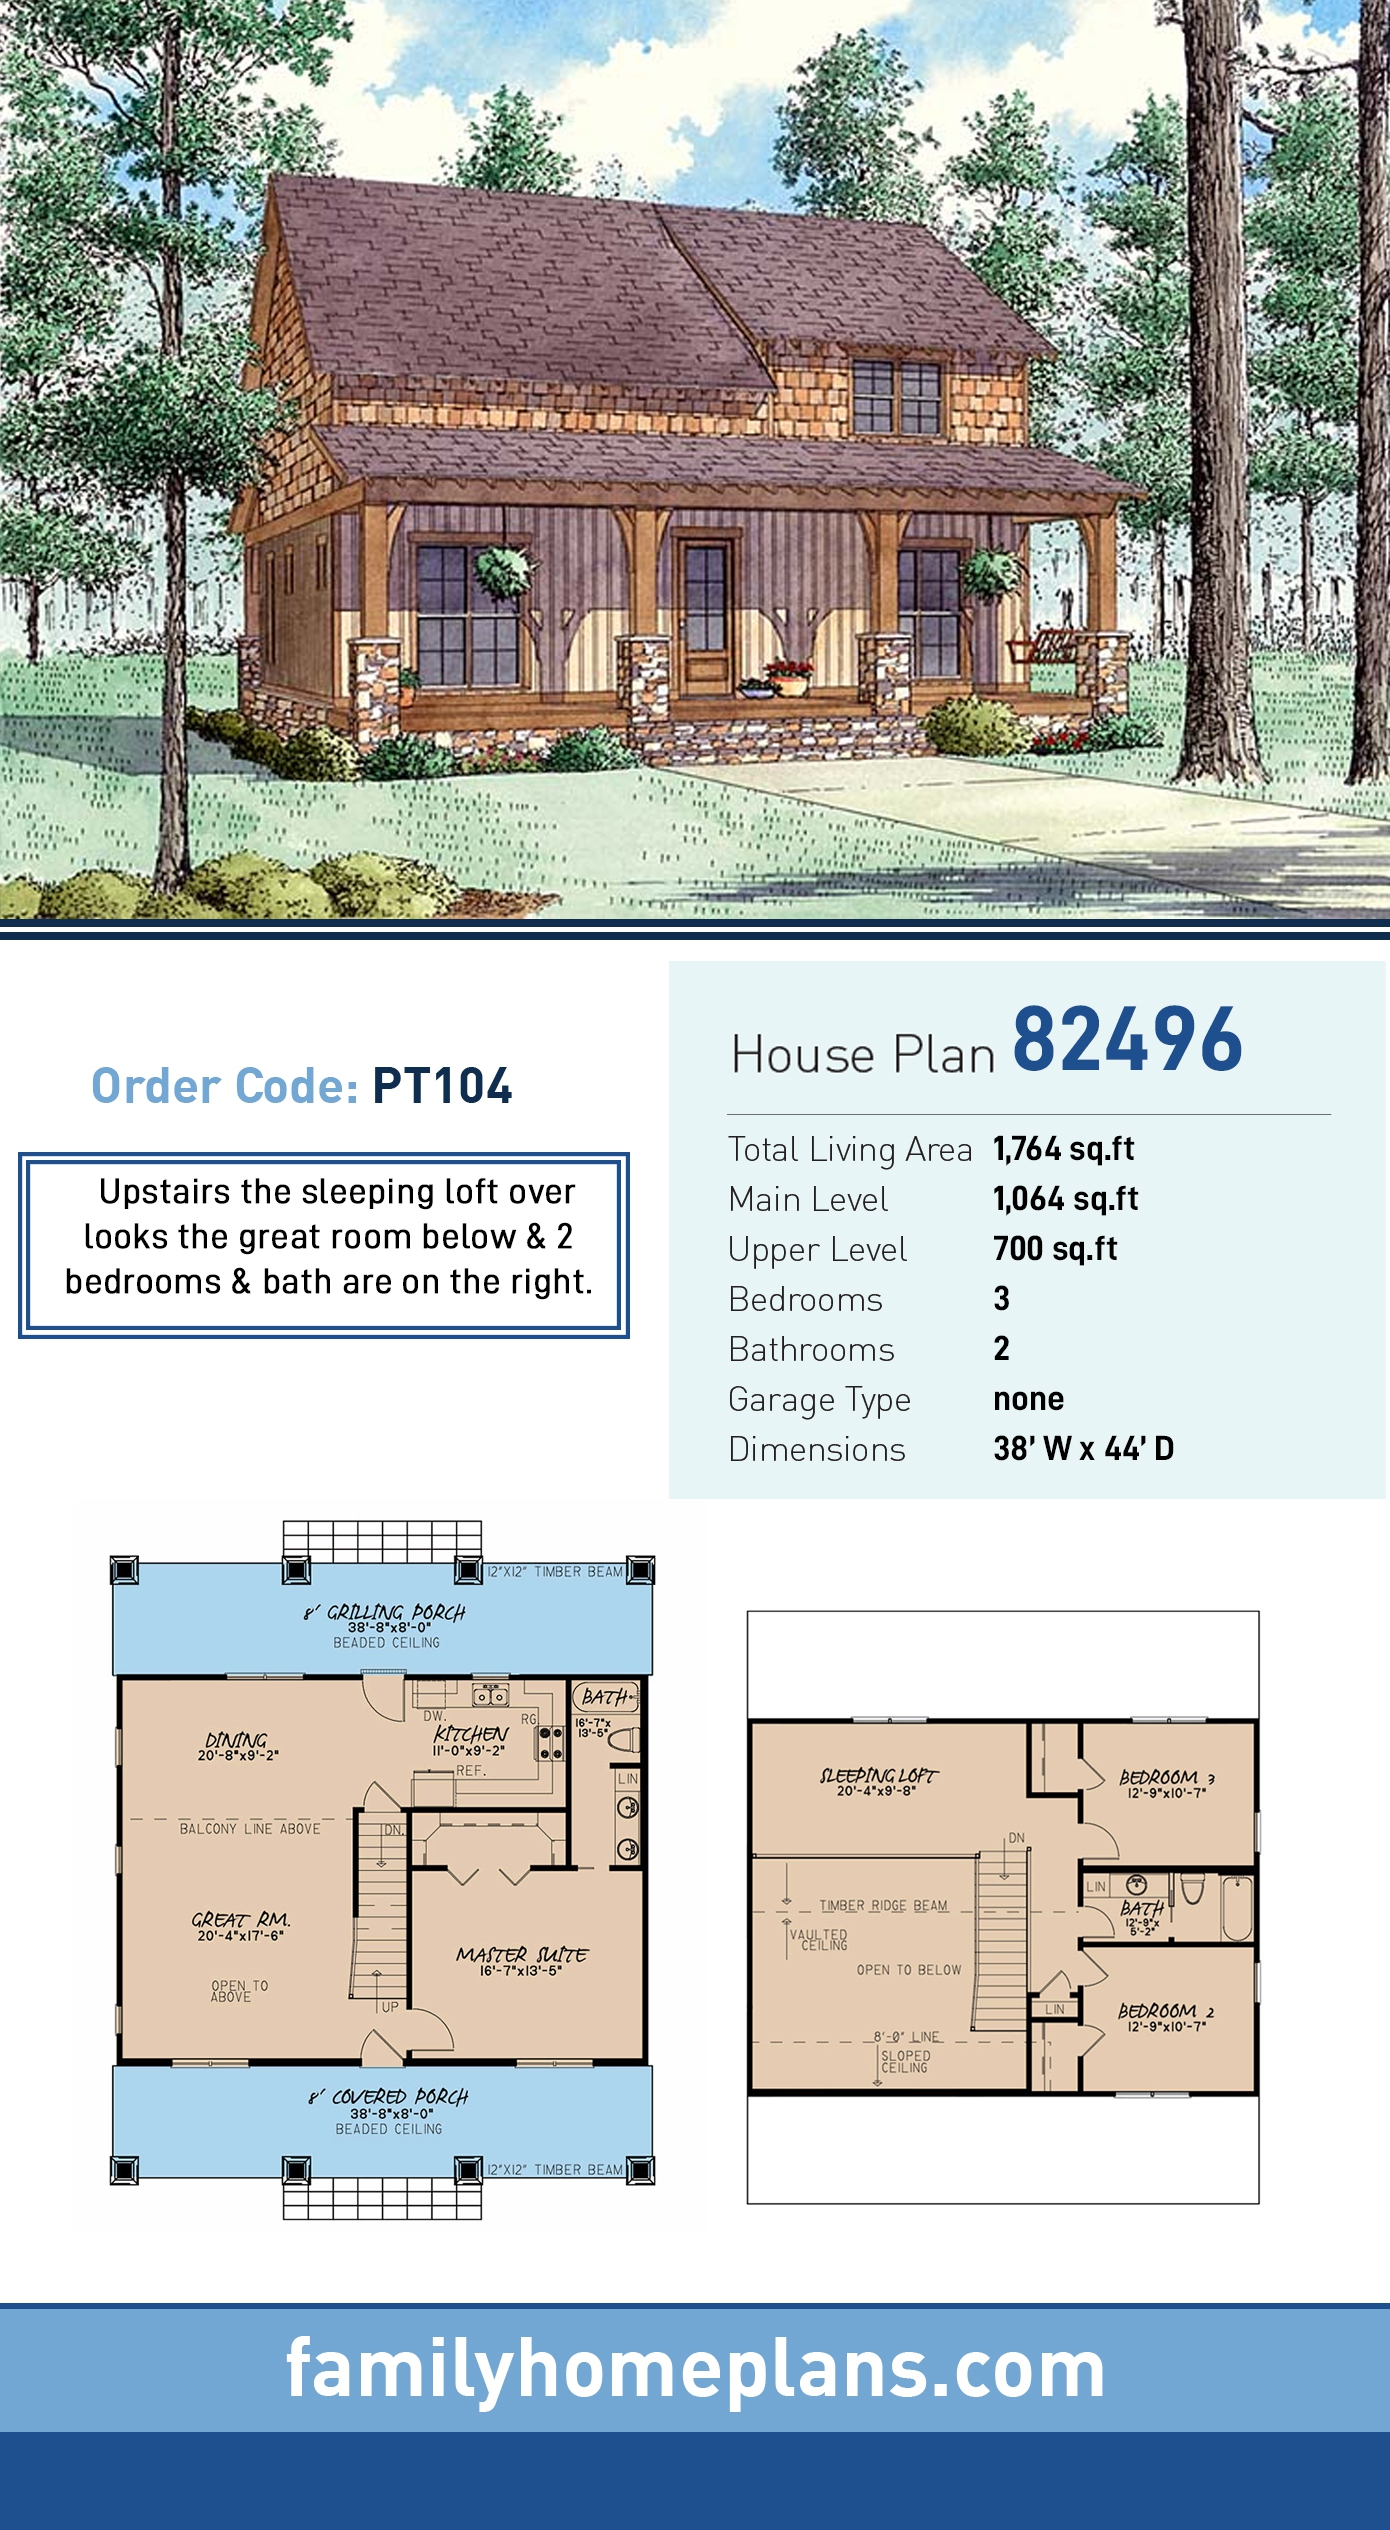 Country House Plan 82496 with 3 Beds, 2 Baths